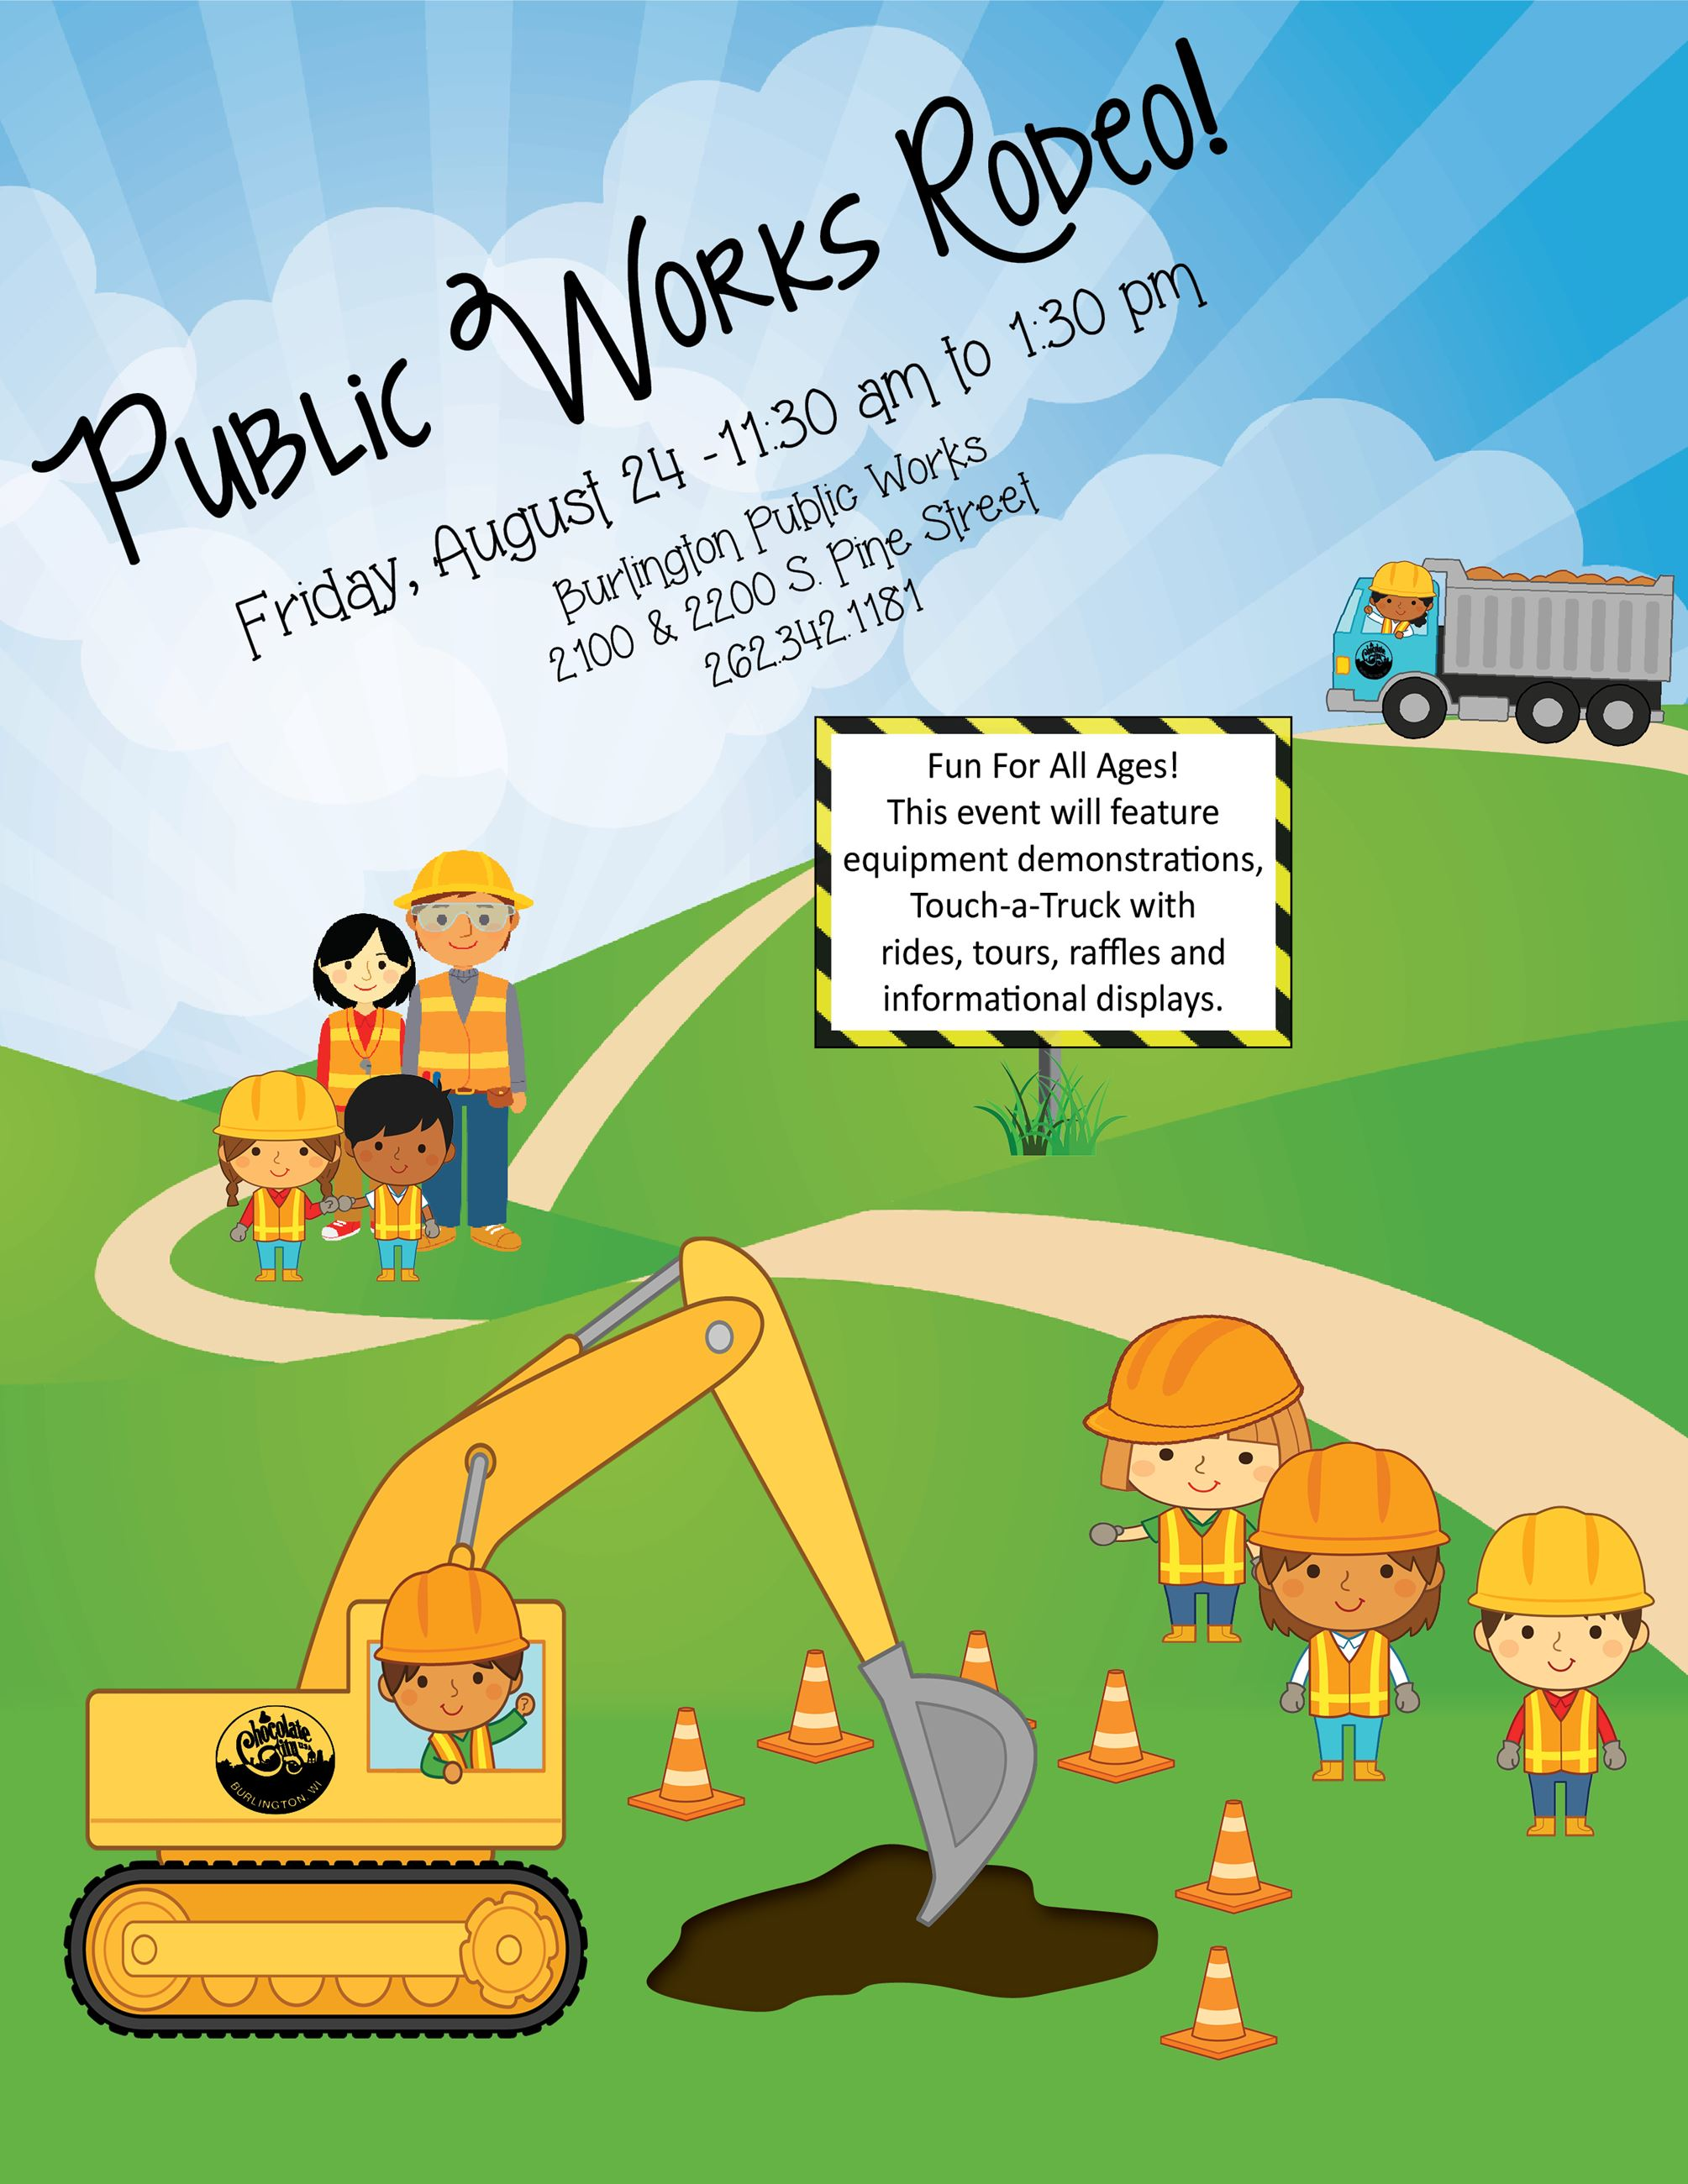 public works rodeo 2018